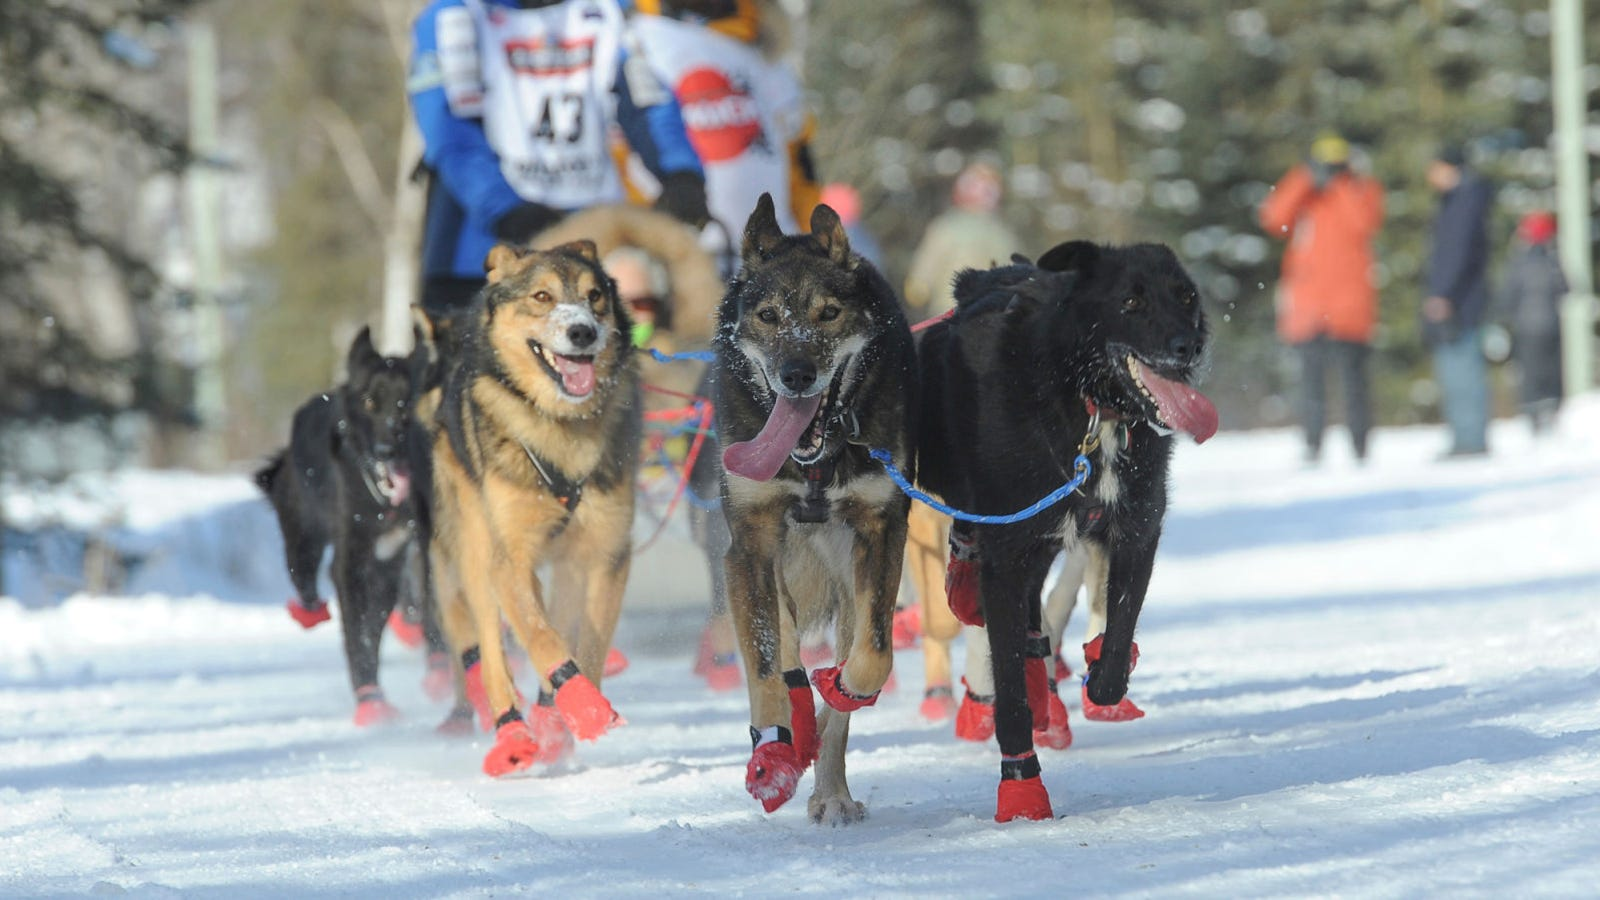 QnA VBage How Technology and Climate Change Are Transforming America's Wildest Dog Sled Race